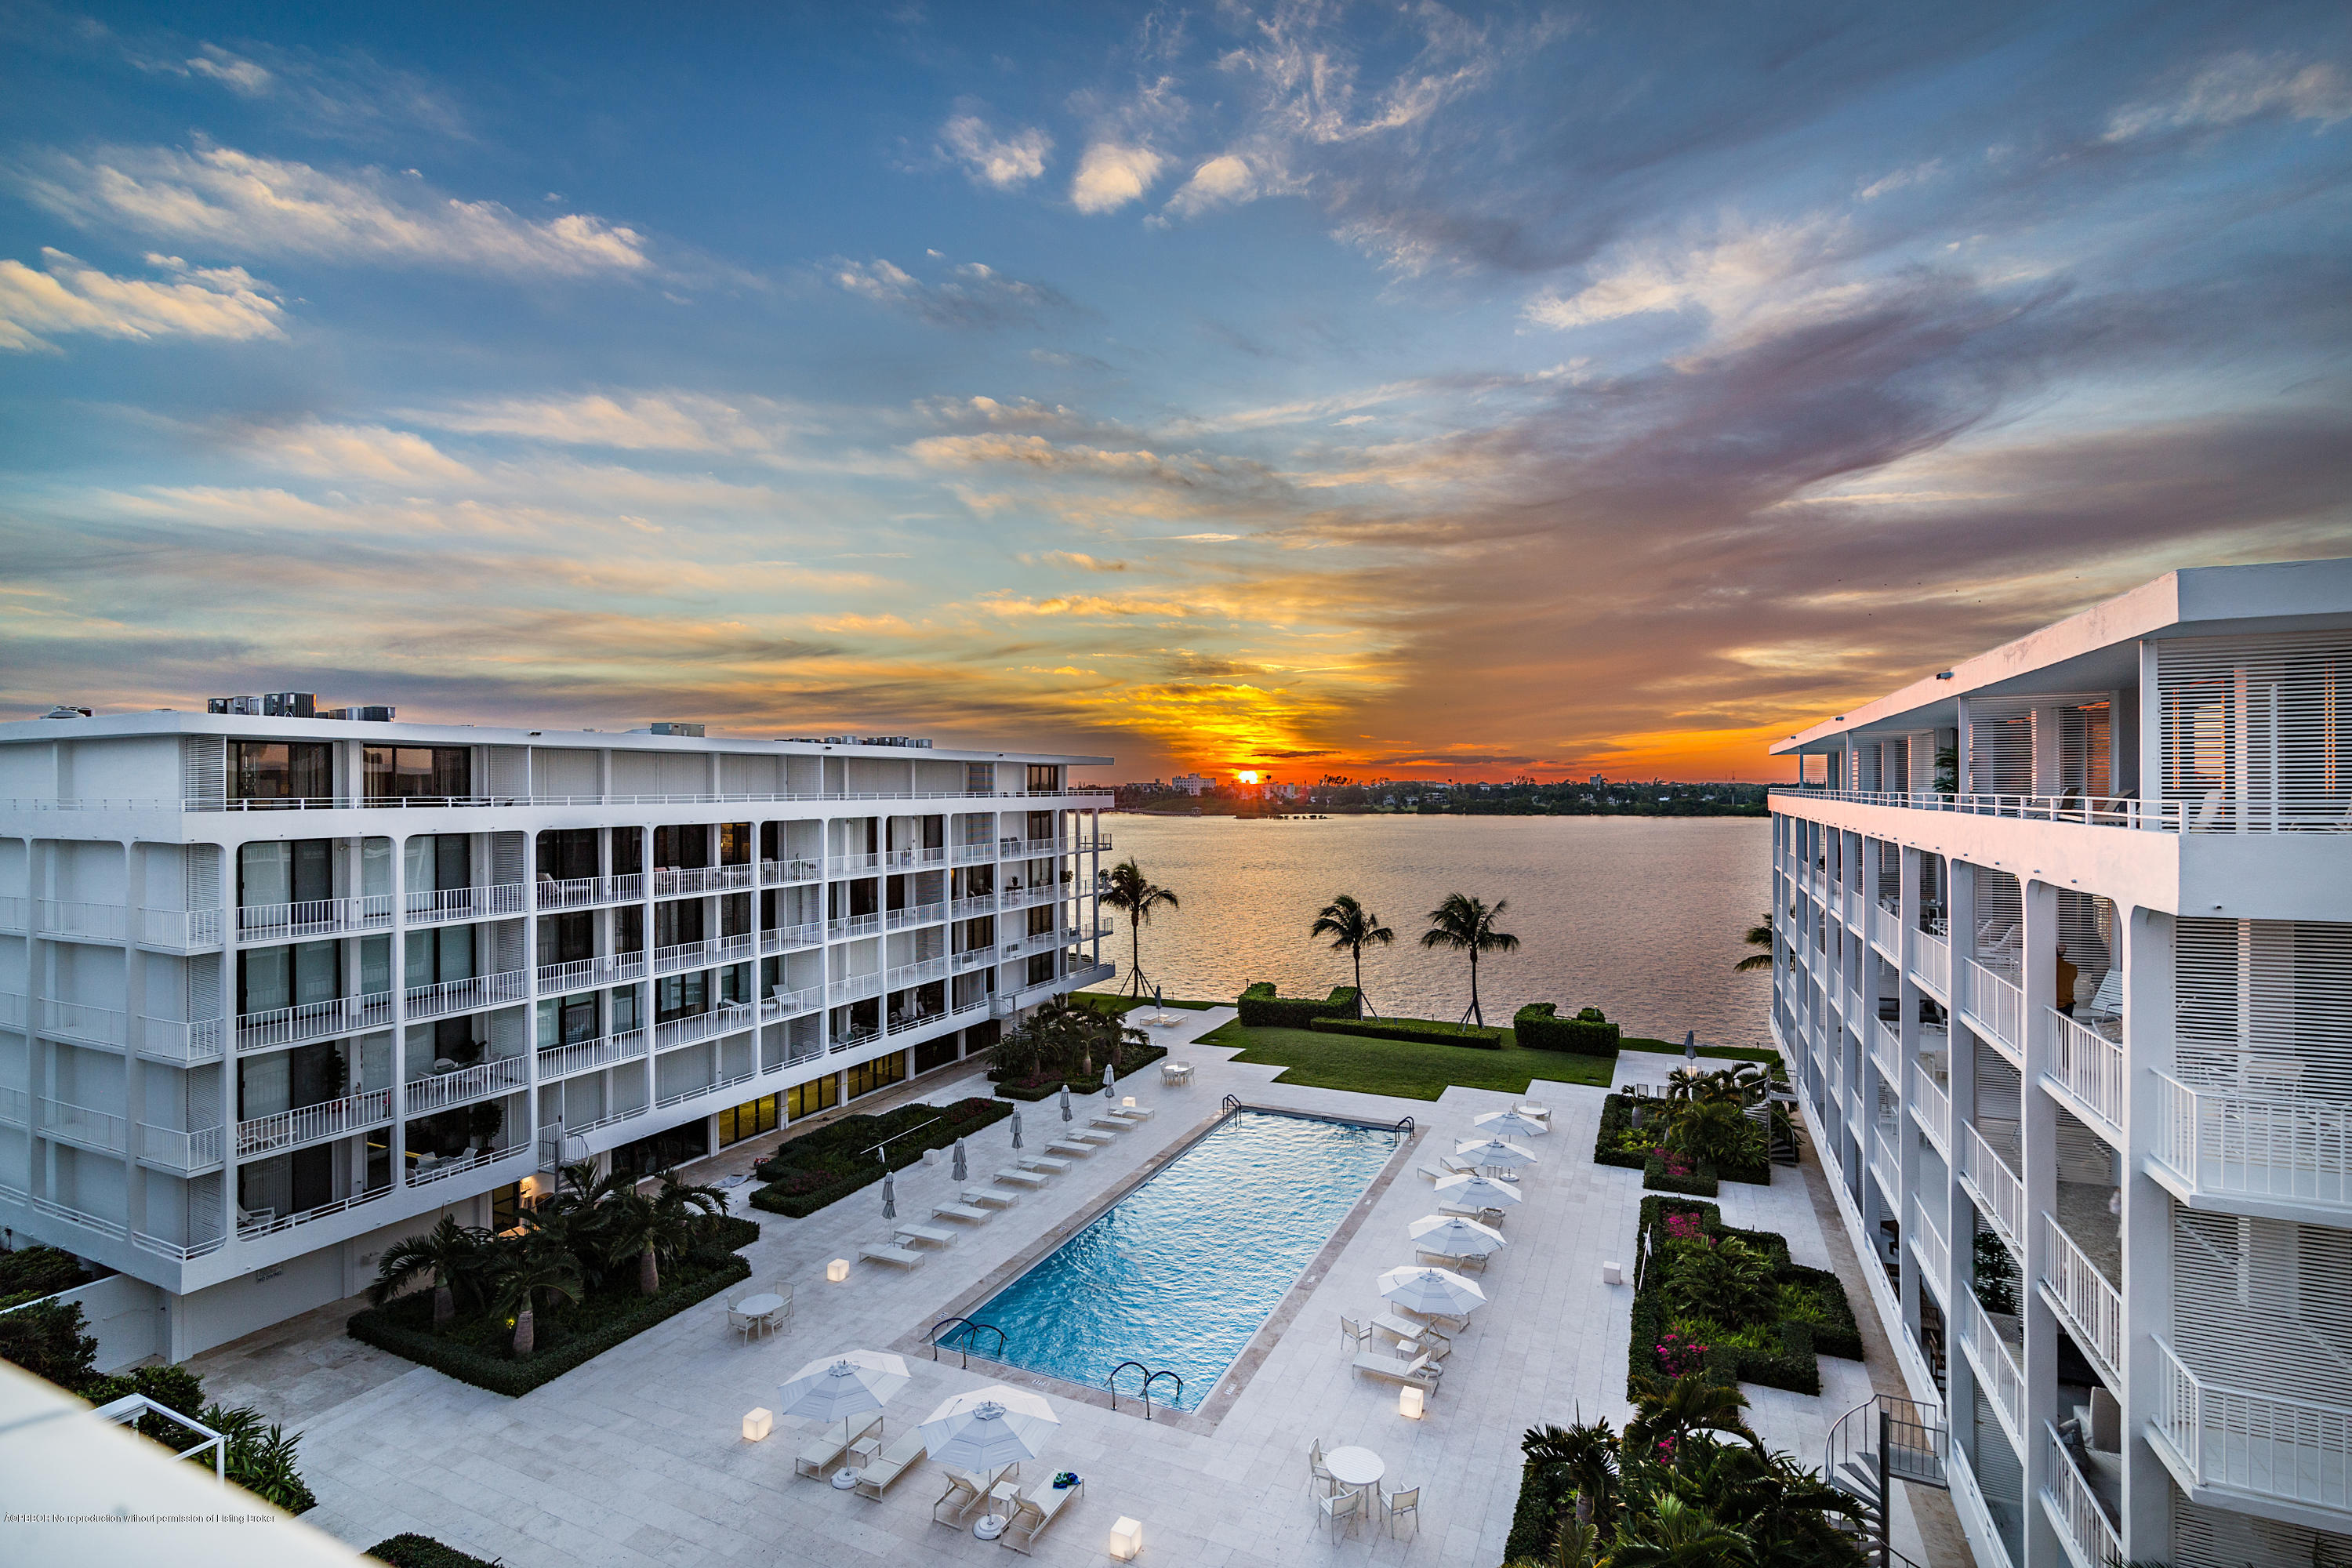 2784 S Ocean Boulevard, 503E - Palm Beach, Florida